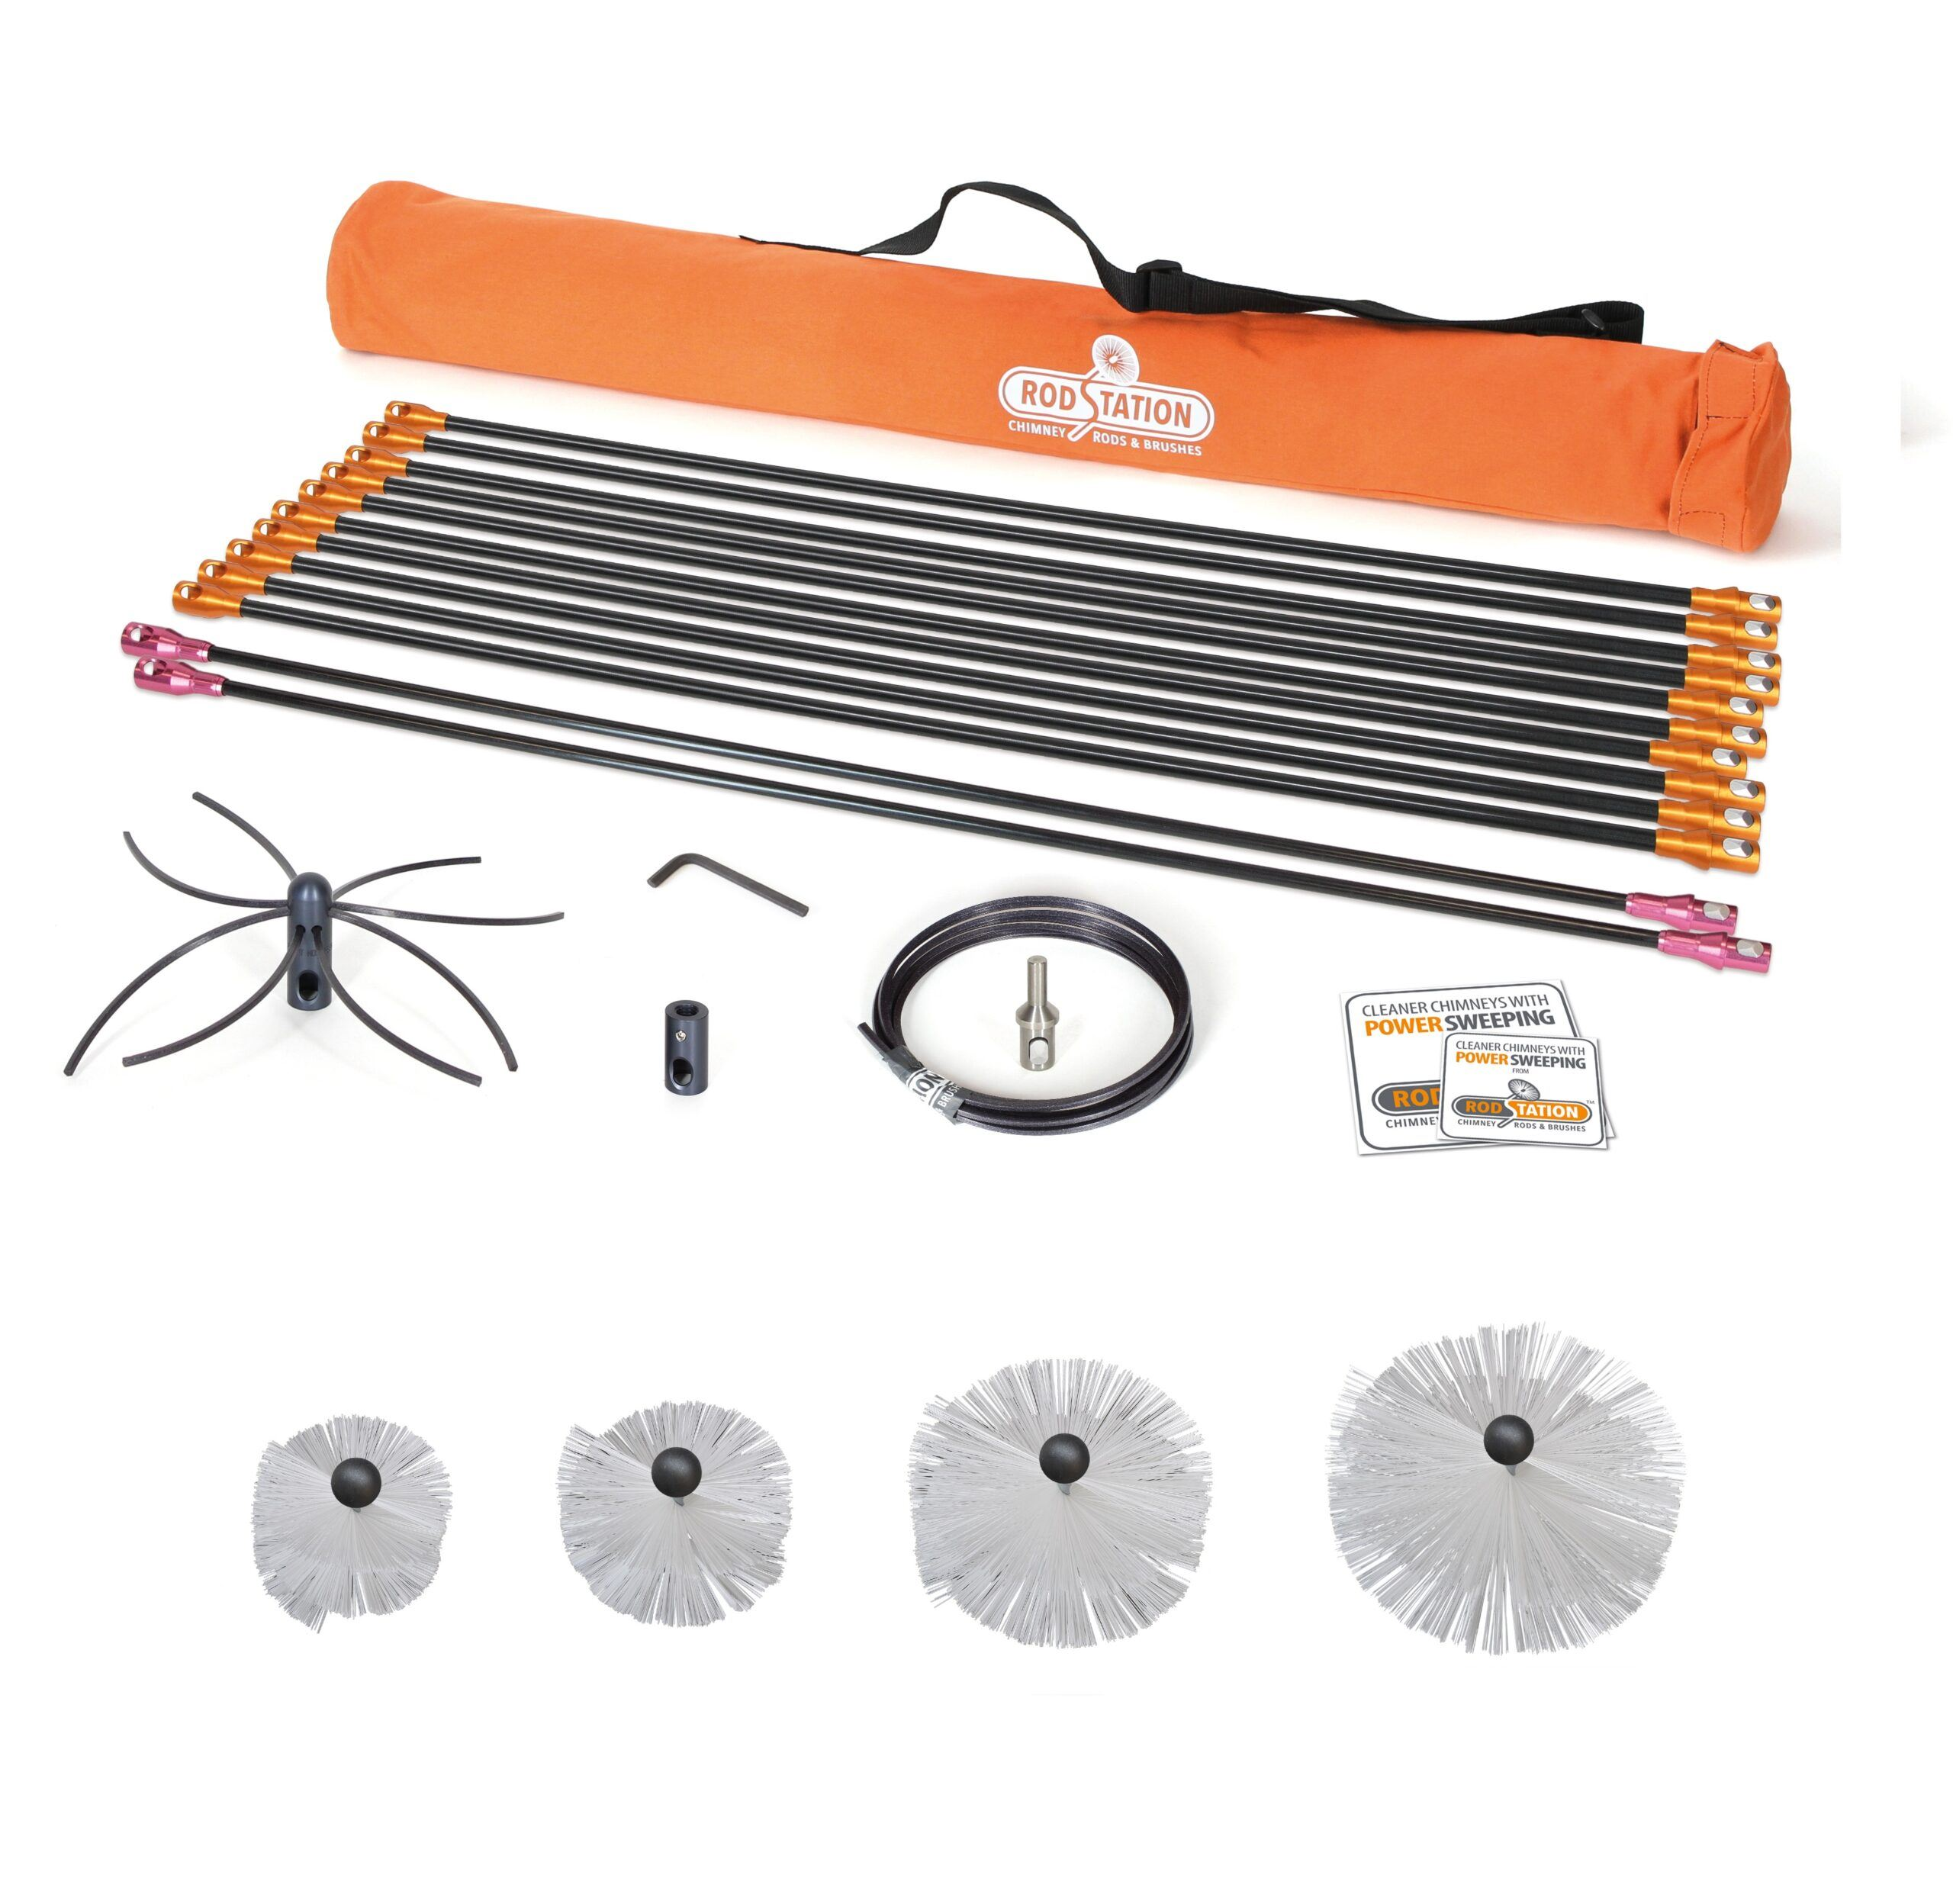 Liner power kit with manual brushes